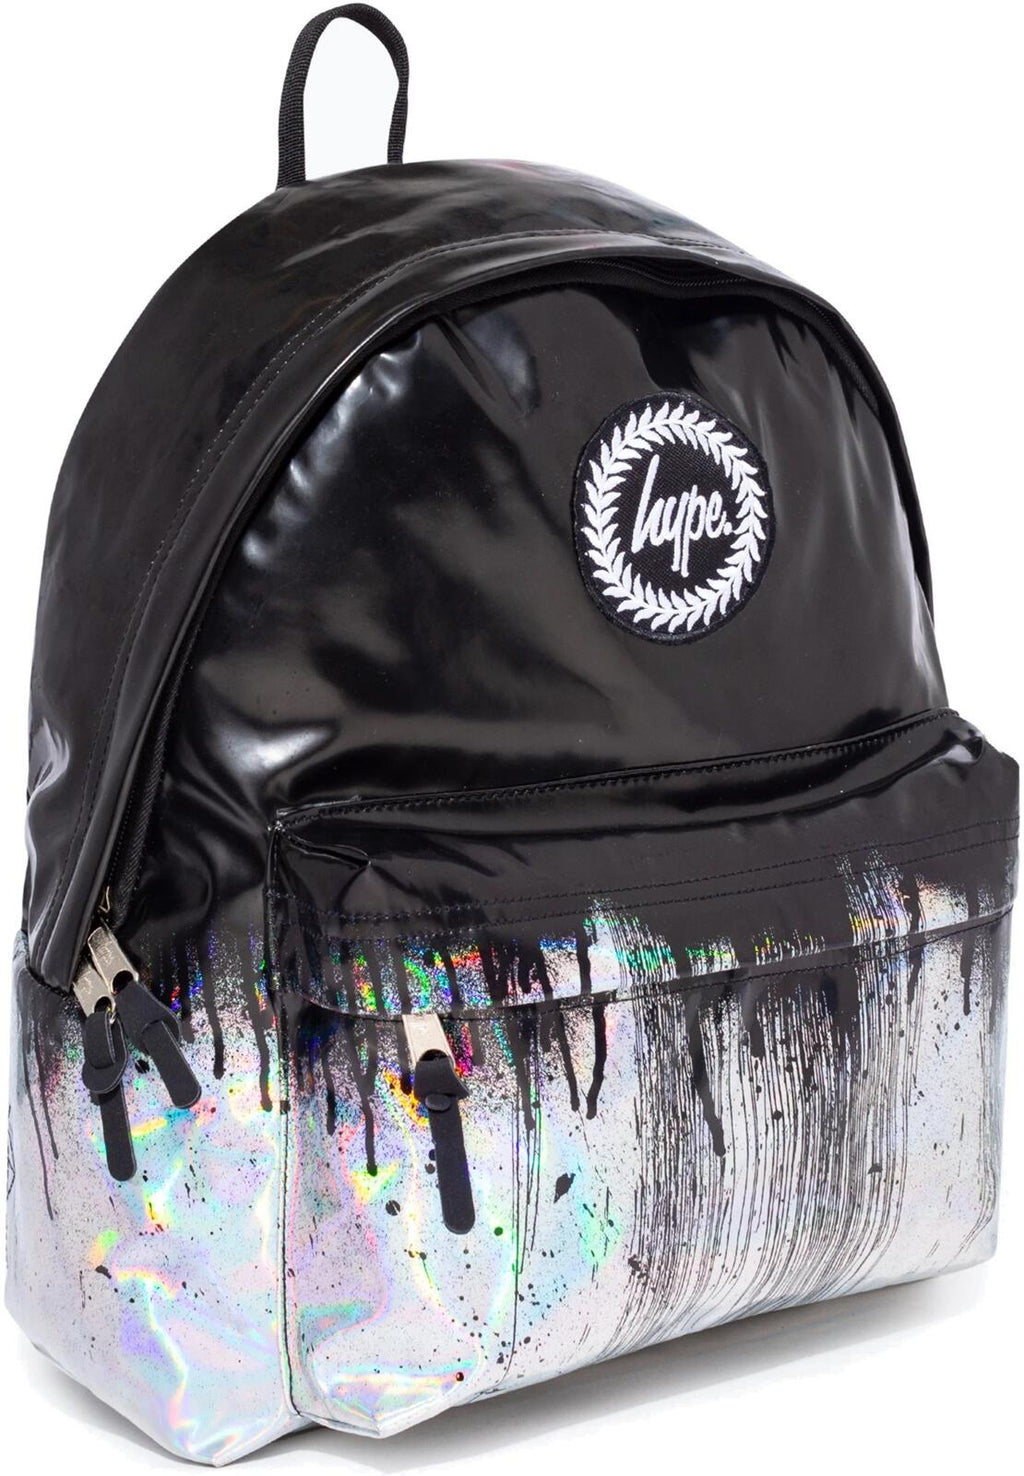 Hype Holographic Drips Backpack Bag Black